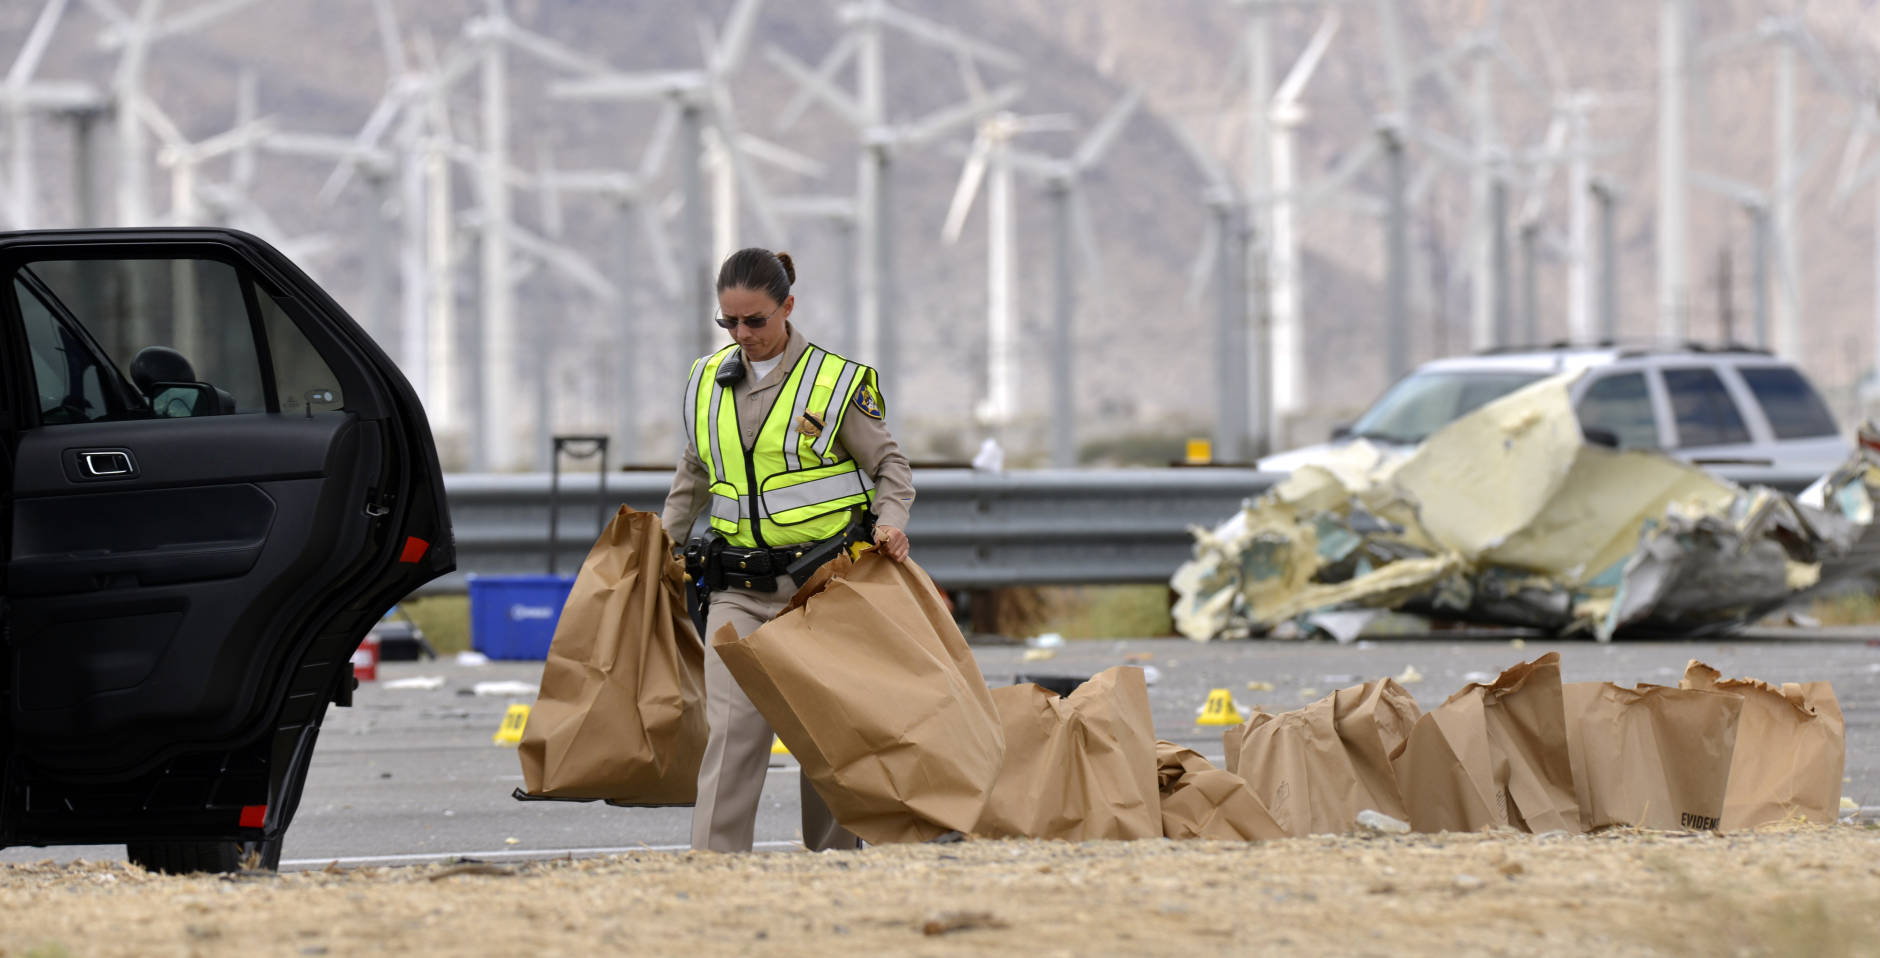 A California Highway Patrol officer load items in bags into a CHP vehicle after a tour bus crashed with a semi-truck on Interstate 10, west of the Indian Canyon Drive off-ramp, in Desert Hot Springs, near Palm Springs, Calif., Sunday, Oct. 23, 2016. The tour bus and the semi-truck crashed on the highway in Southern California early Sunday, killing at least a dozen of people and injuring at least 30 others, some critically, the California Highway Patrol said. (AP Photo/Rodrigo Pena)